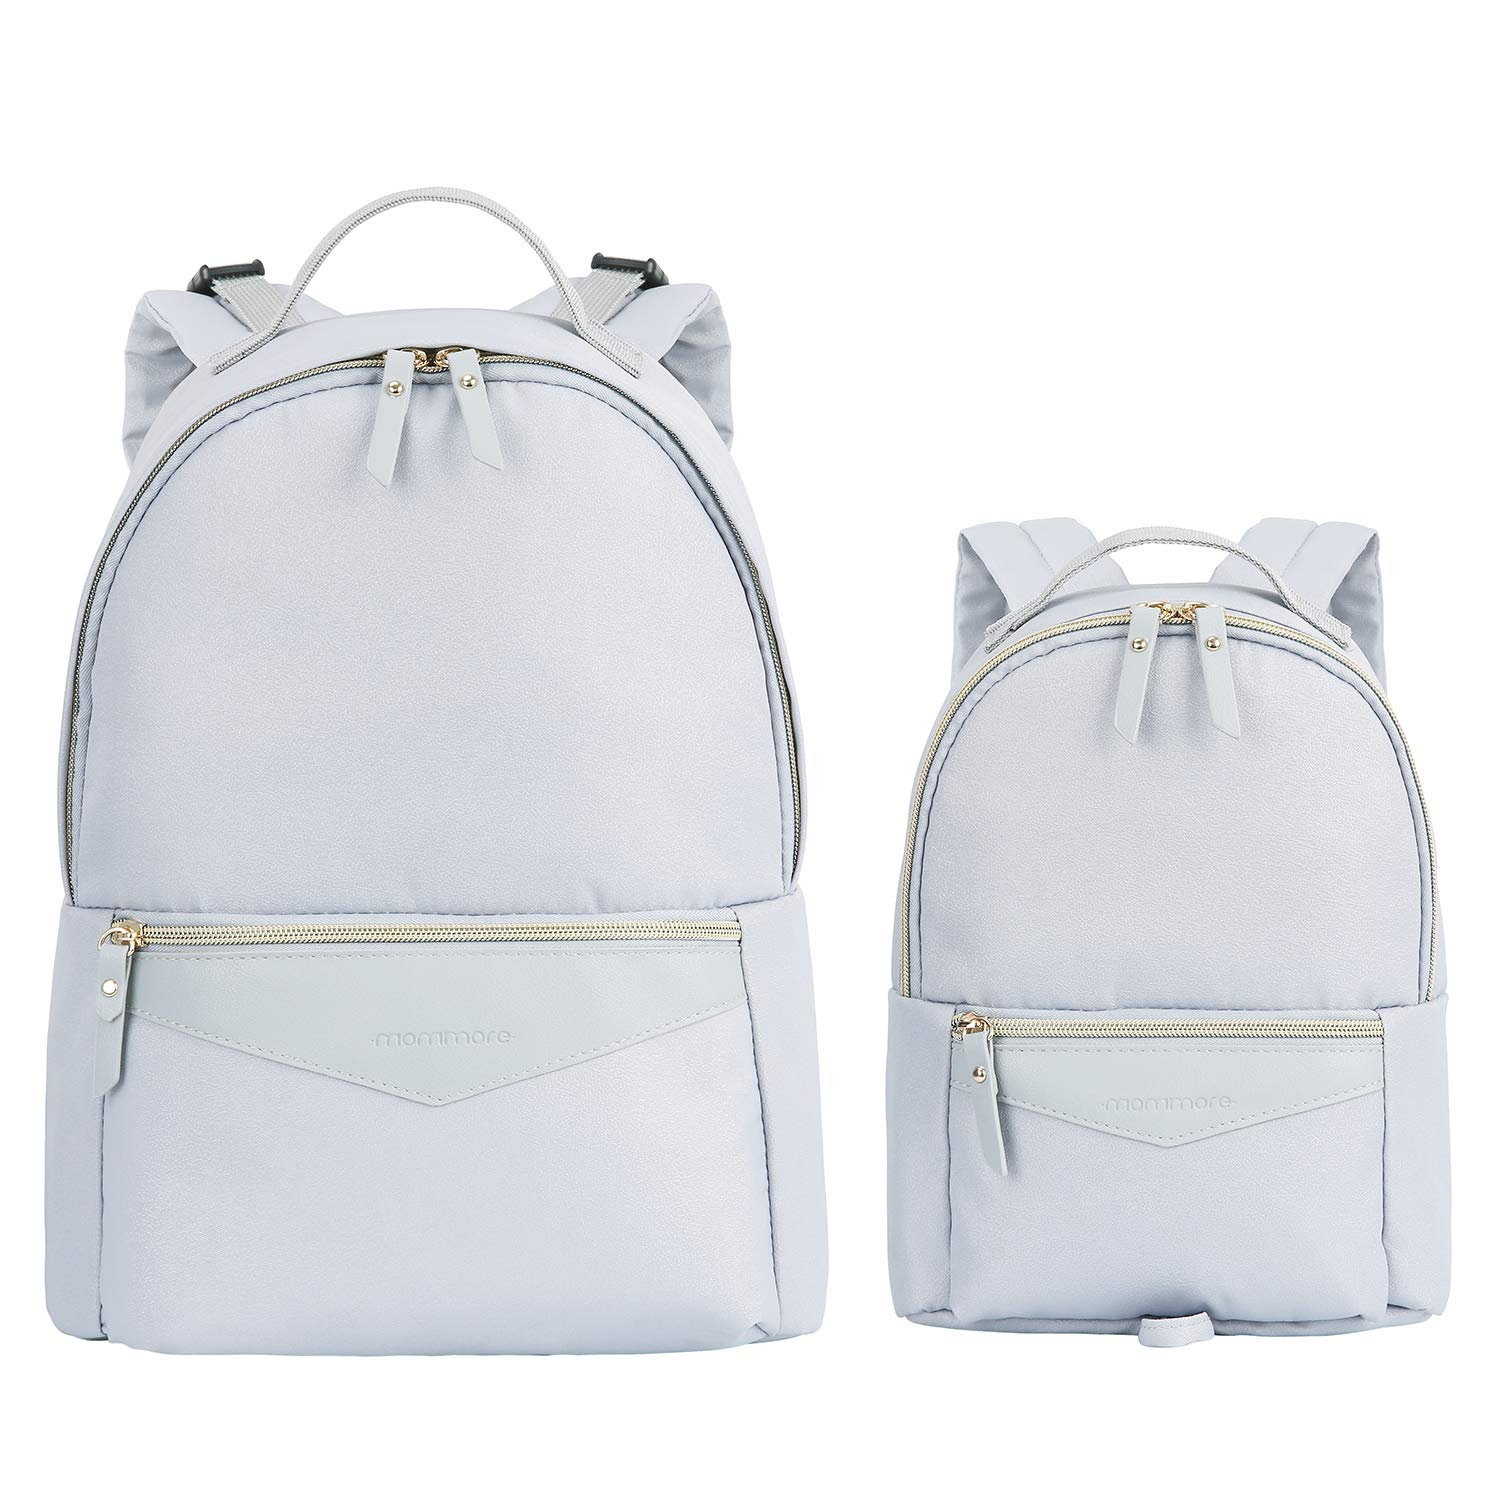 mommore Fashion Diaper Backpack Bag with Small Toddler Backpack for Mother-Daughter Matching Look, 2 Piece Set, Grey